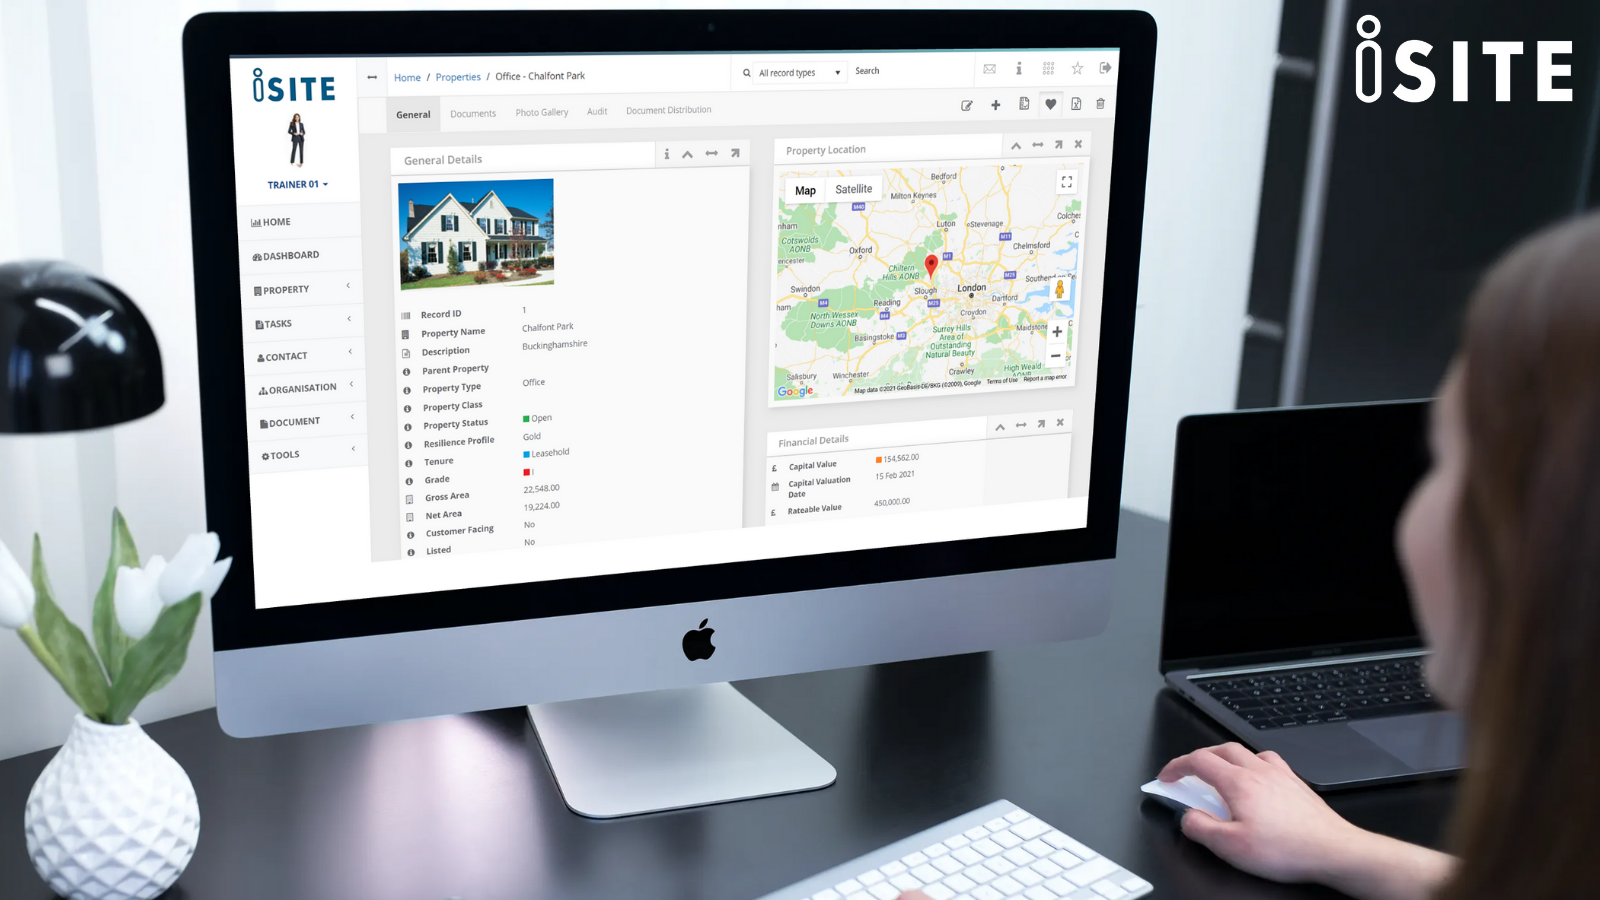 iSite Lite Software - iSite allows you to see all of your property information on one easy to navigate page, such as projects, assets, maintenance, lease breaks etc. Allowing you to forsee any upcoming events before they happen.